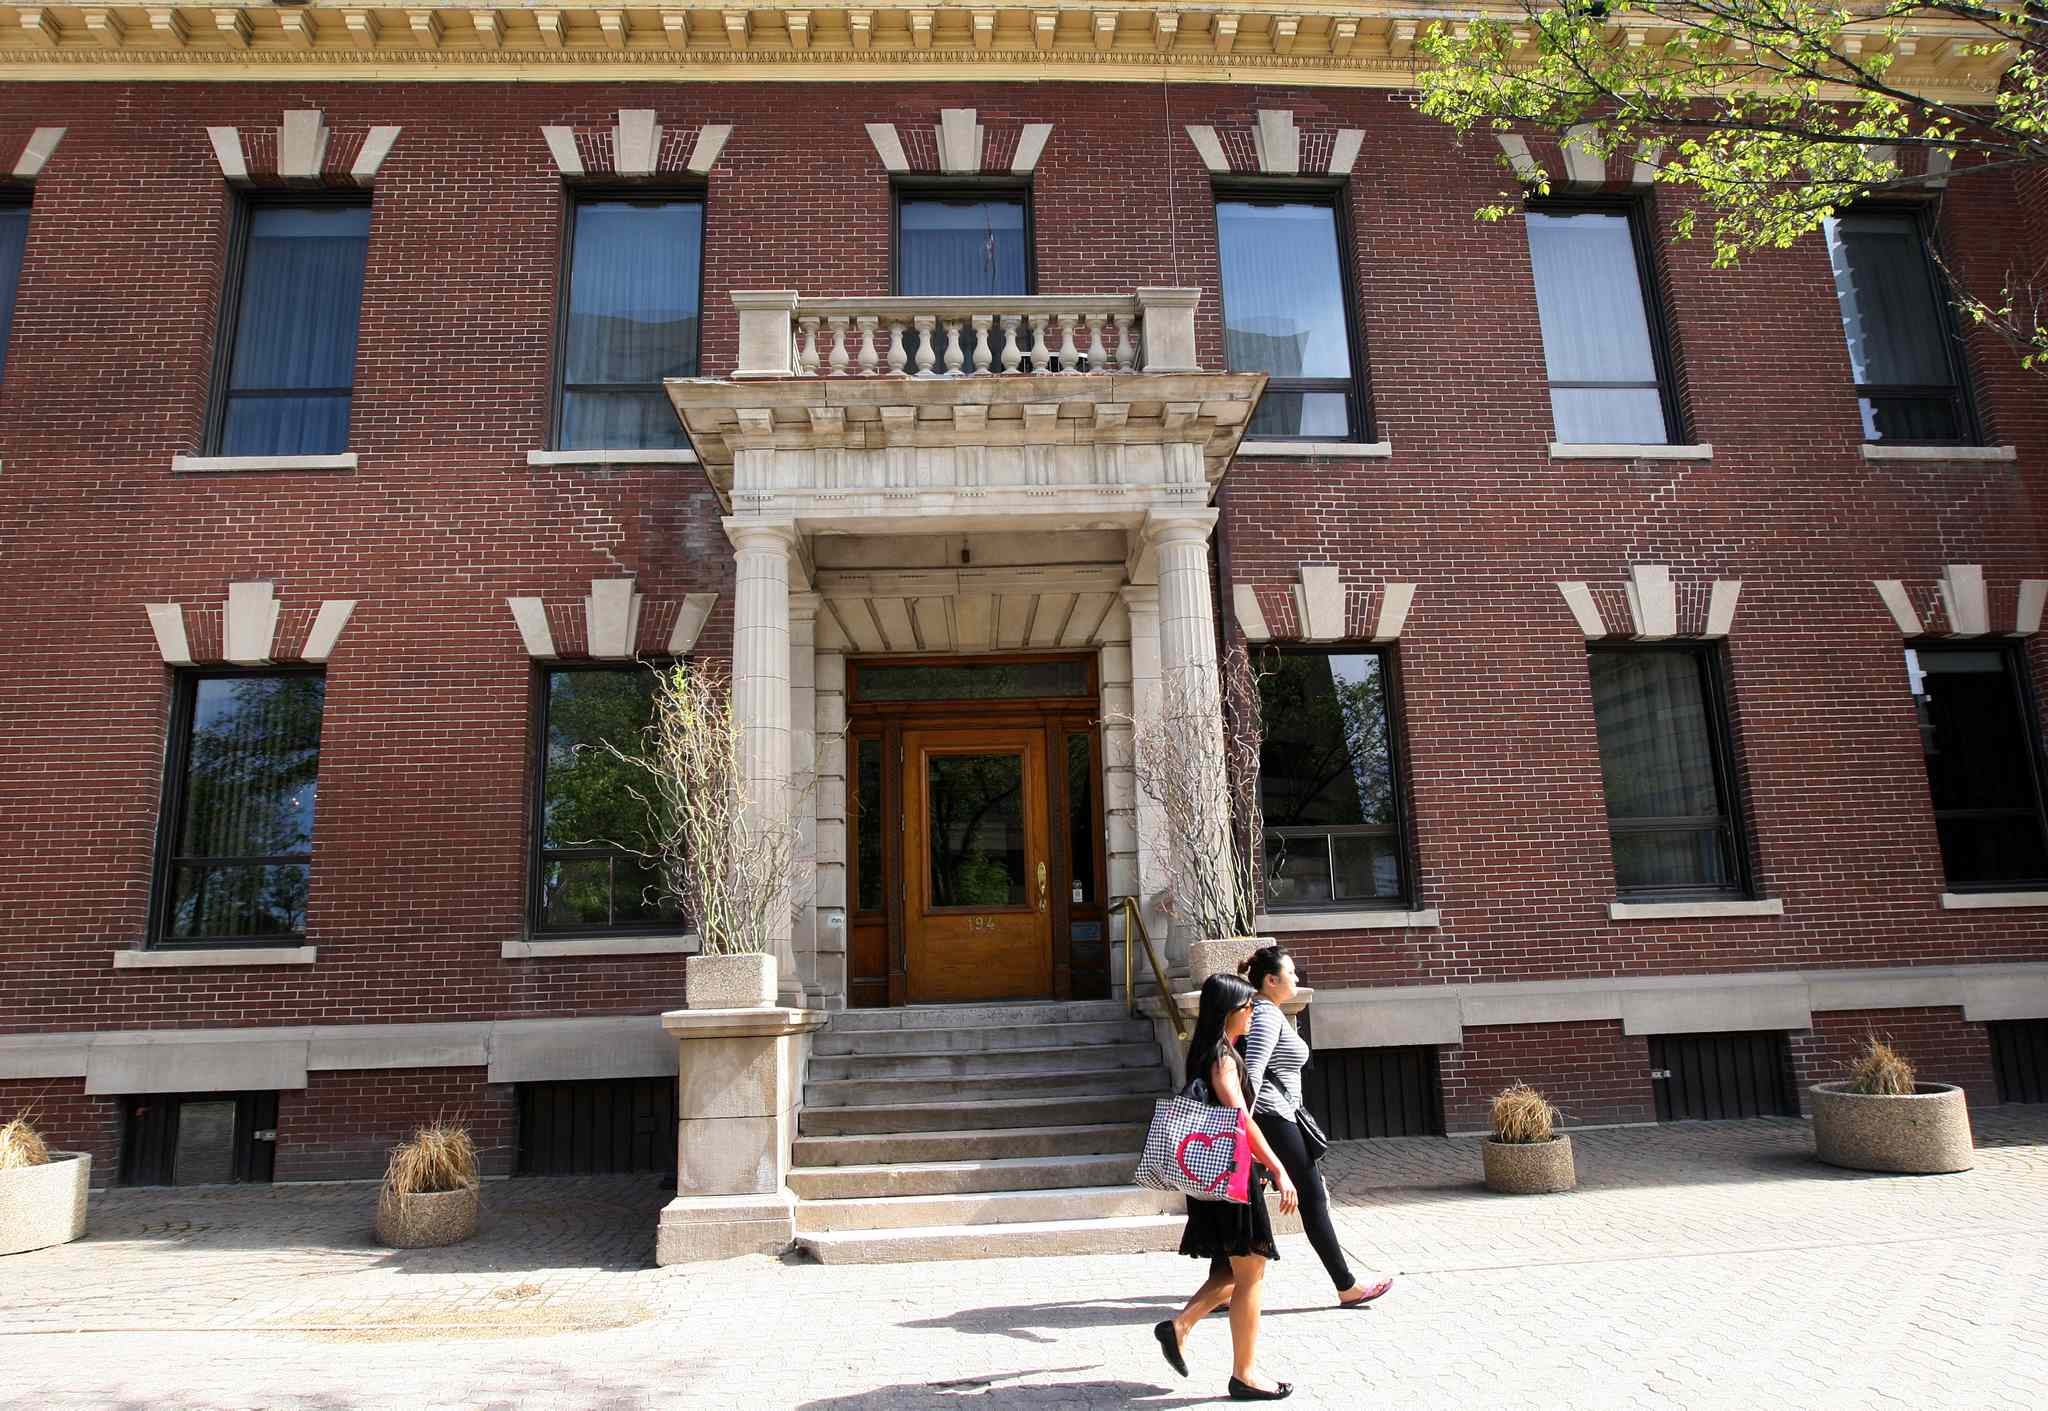 The Manitoba Club is awaiting assessment for full-blown heritage protection